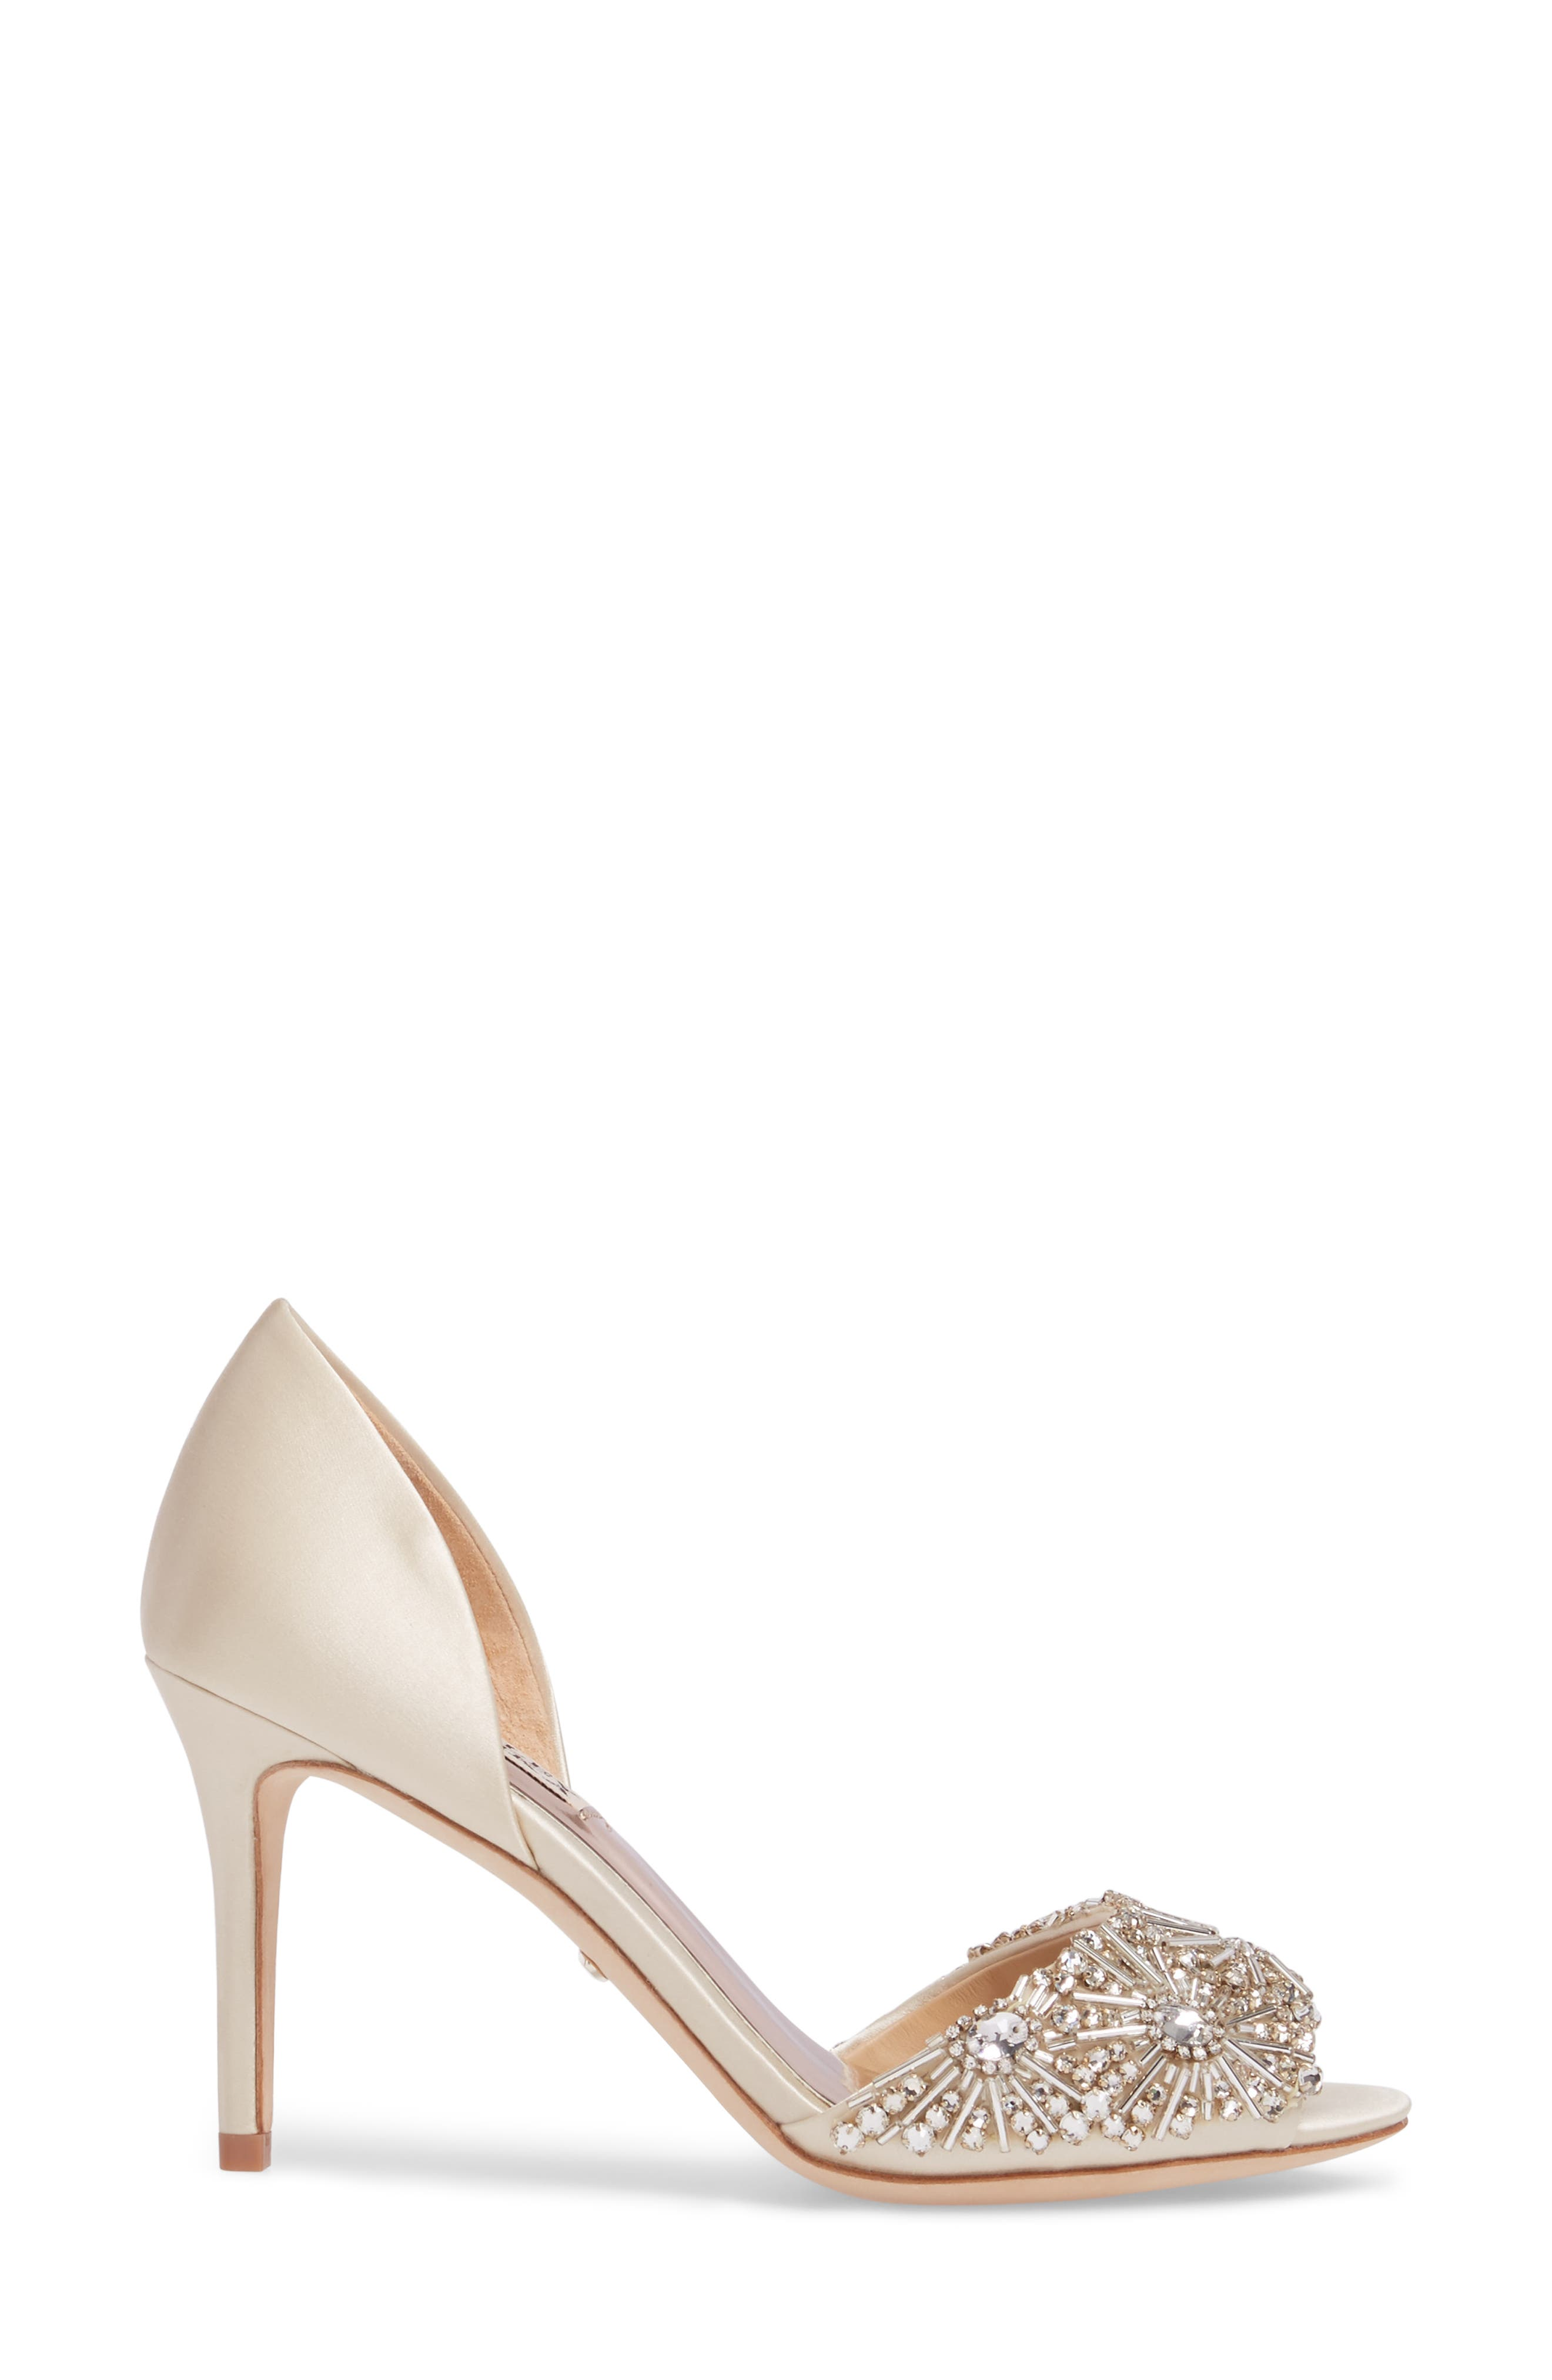 Maria Embellished d'Orsay Pump,                             Alternate thumbnail 18, color,